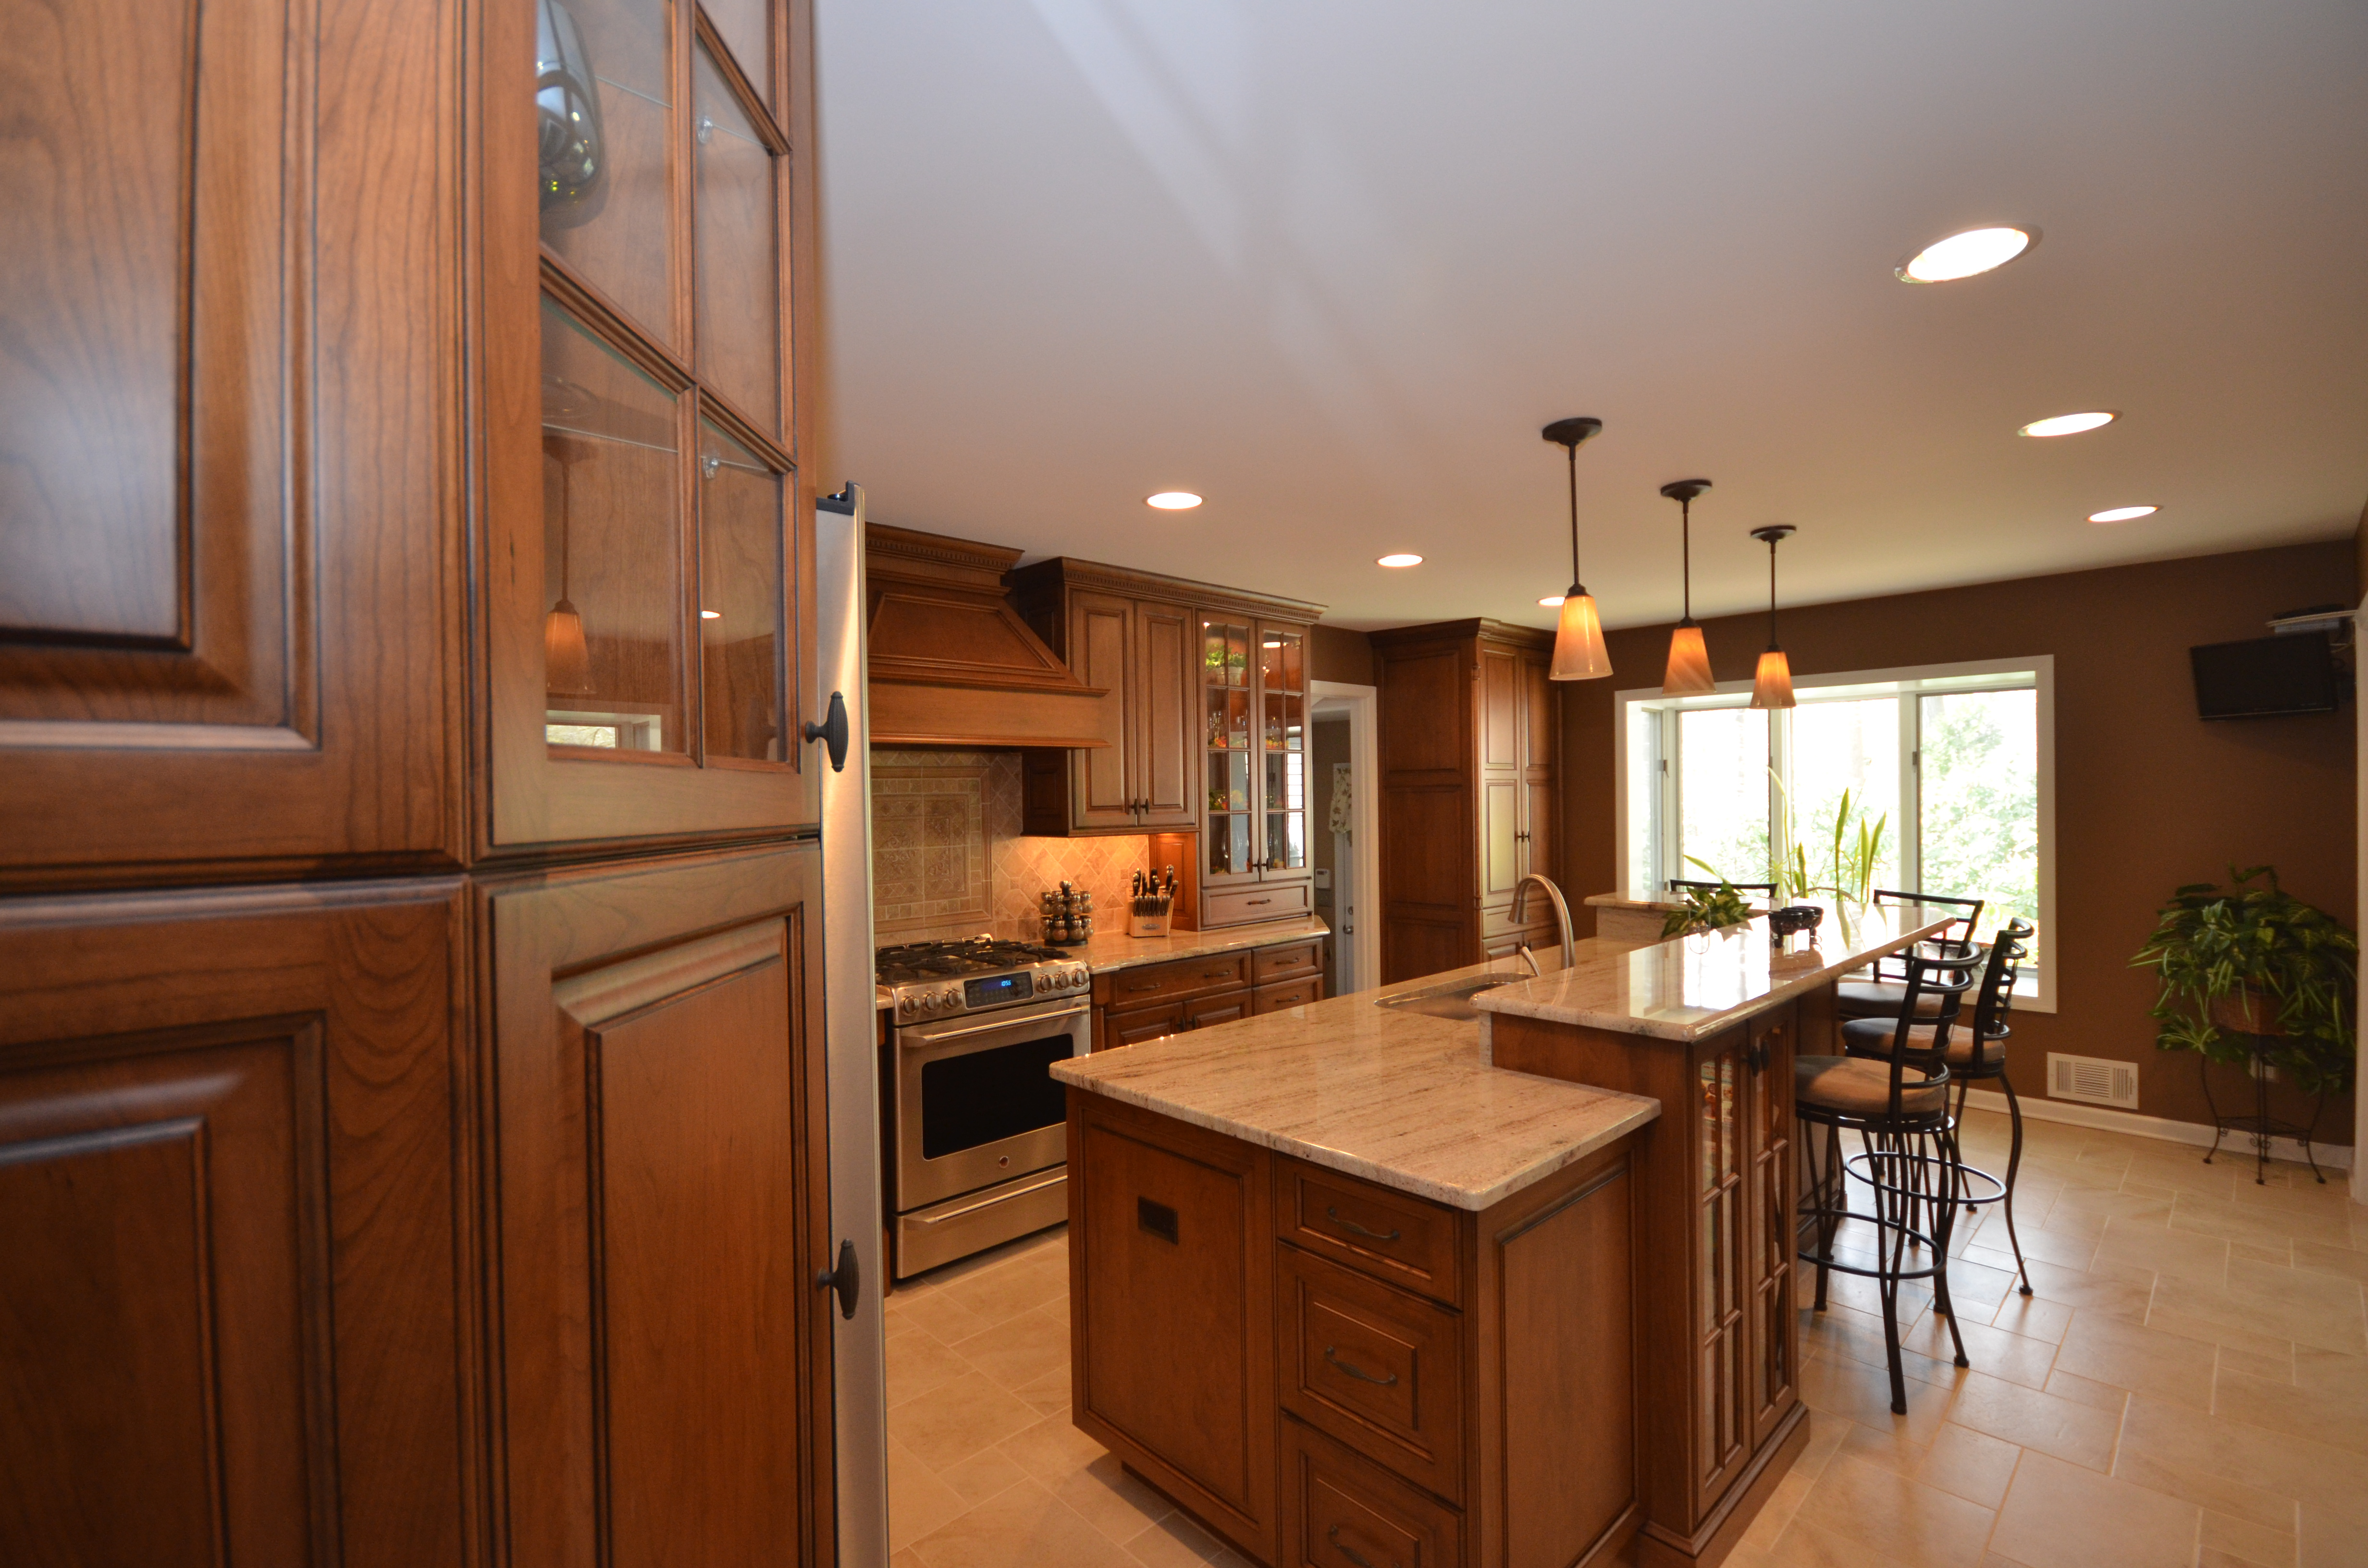 Medium stained wood kitchen holmdel nj by design line kitchens - Design line kitchens ...